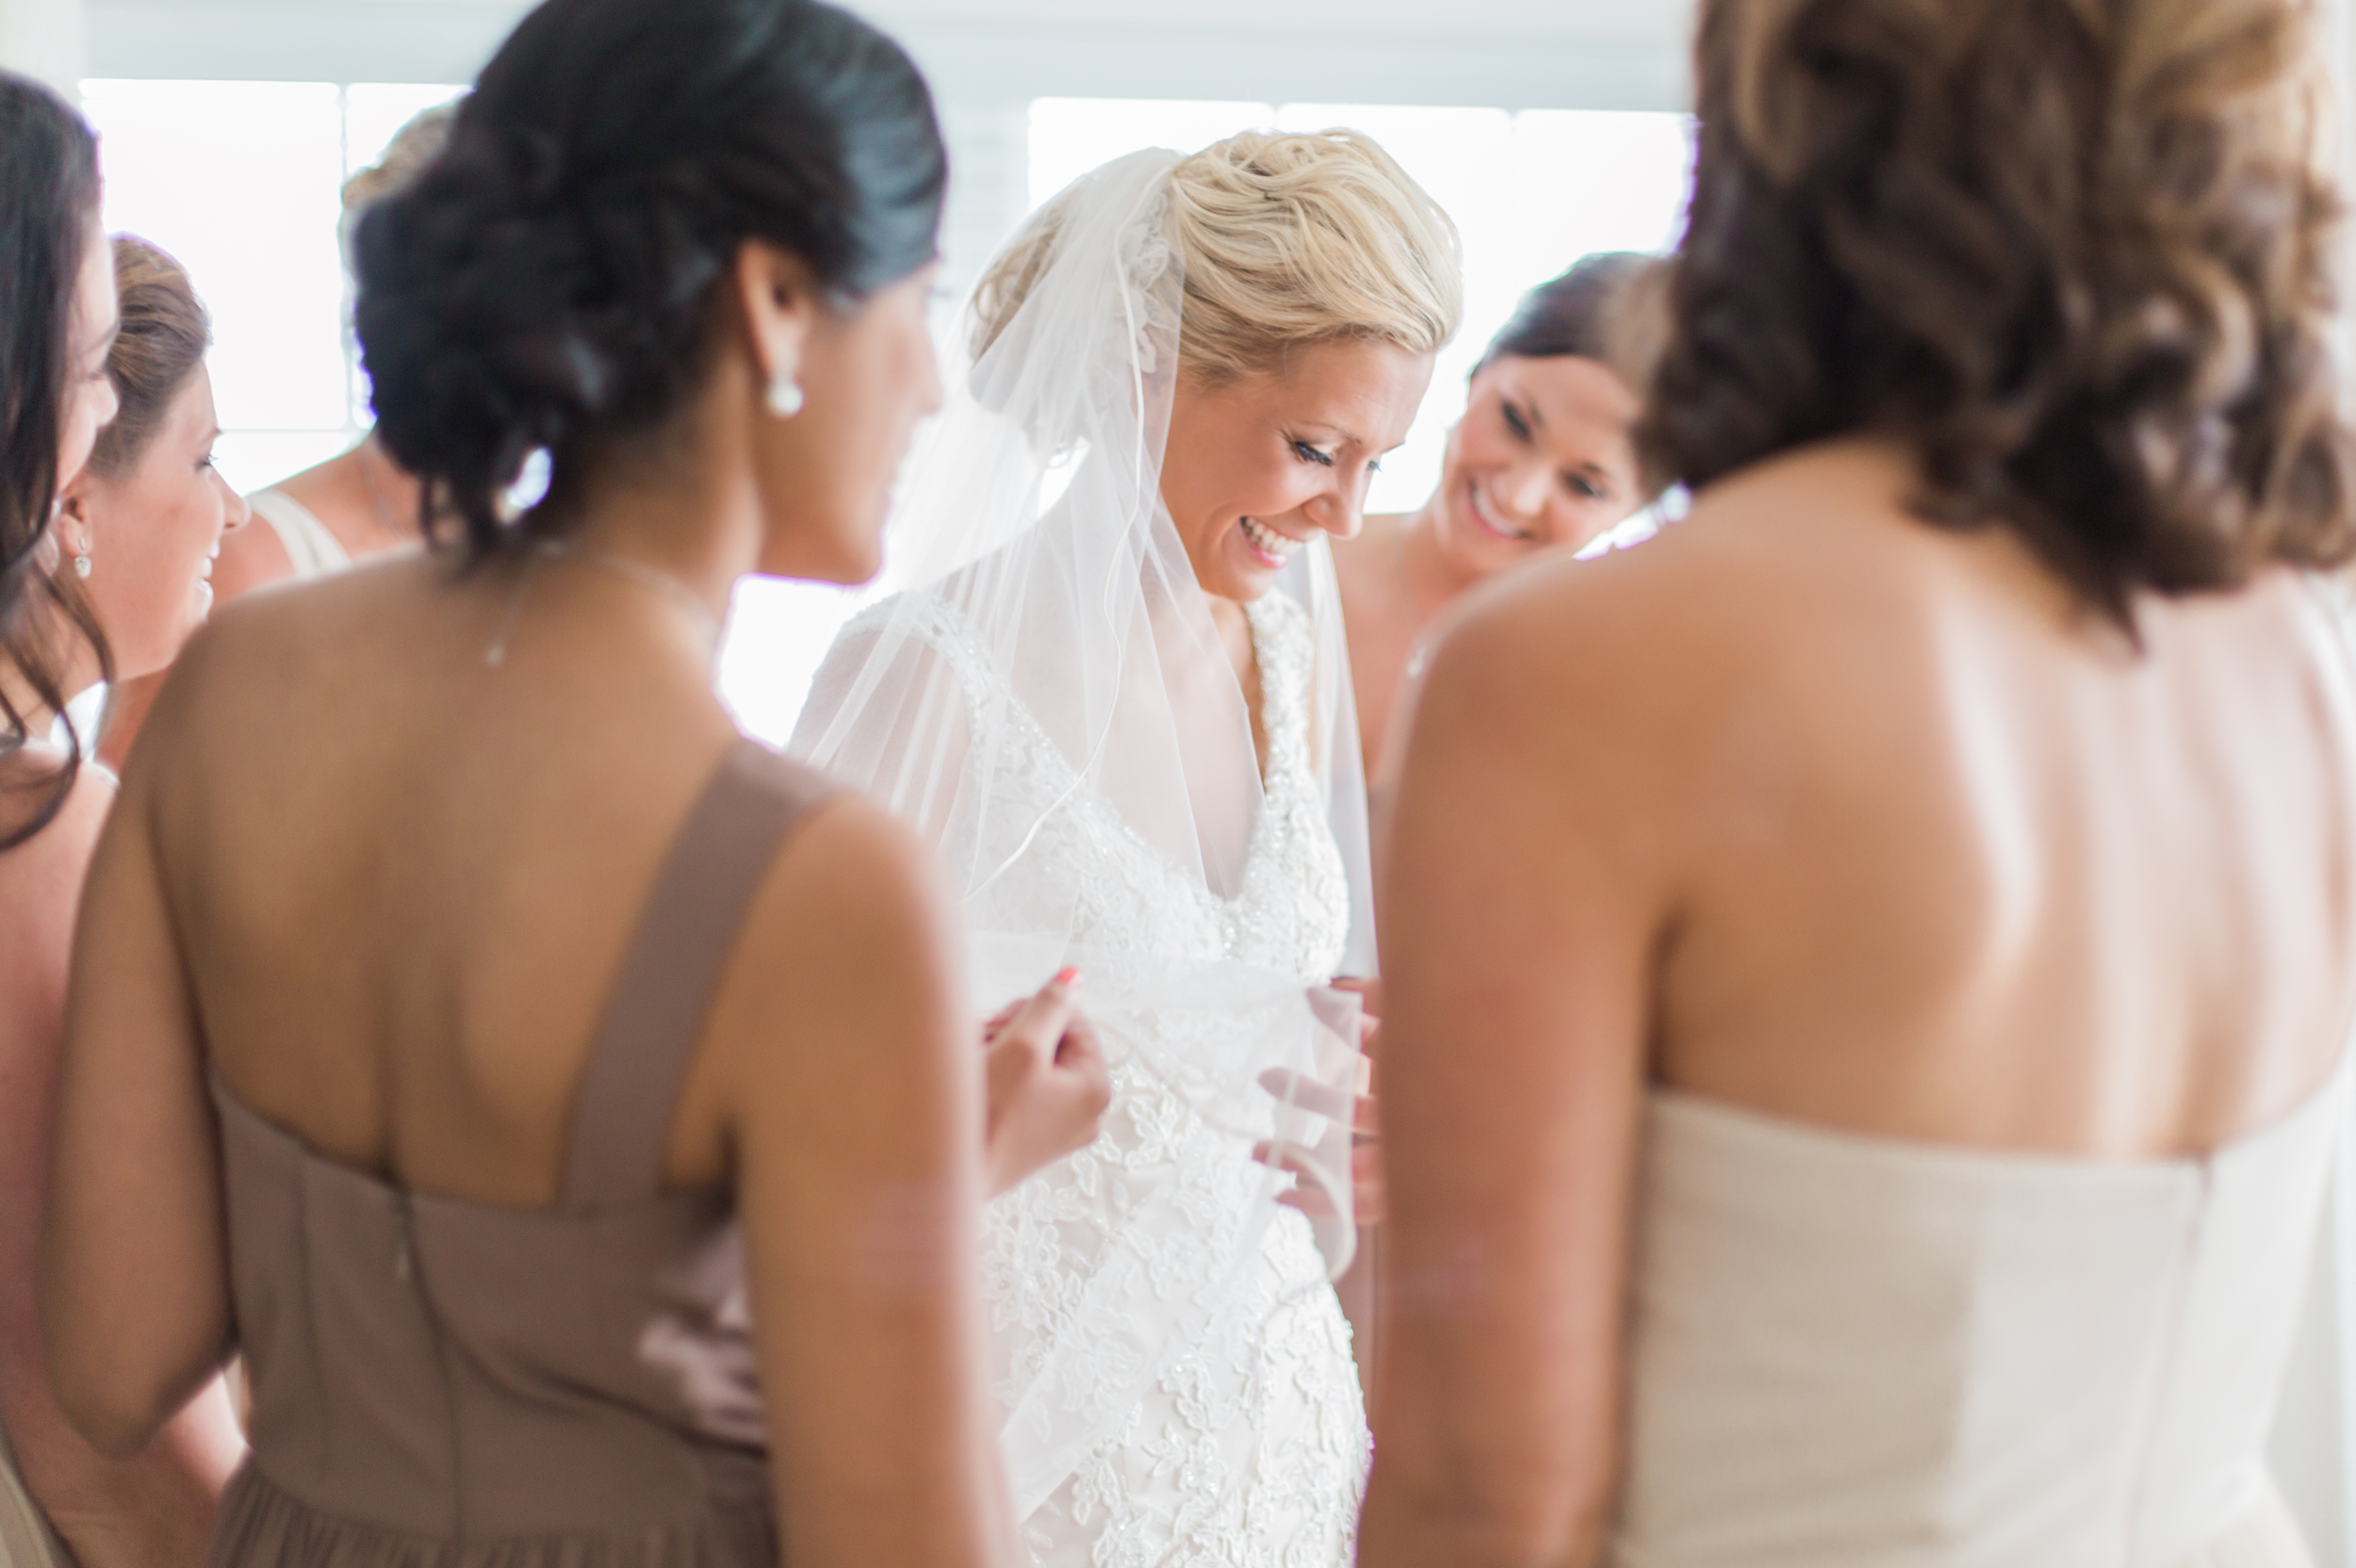 South-Jersey-Wedding-Photographer_The-Reeds-At-Shelter-Haven-Wedding-16.jpg